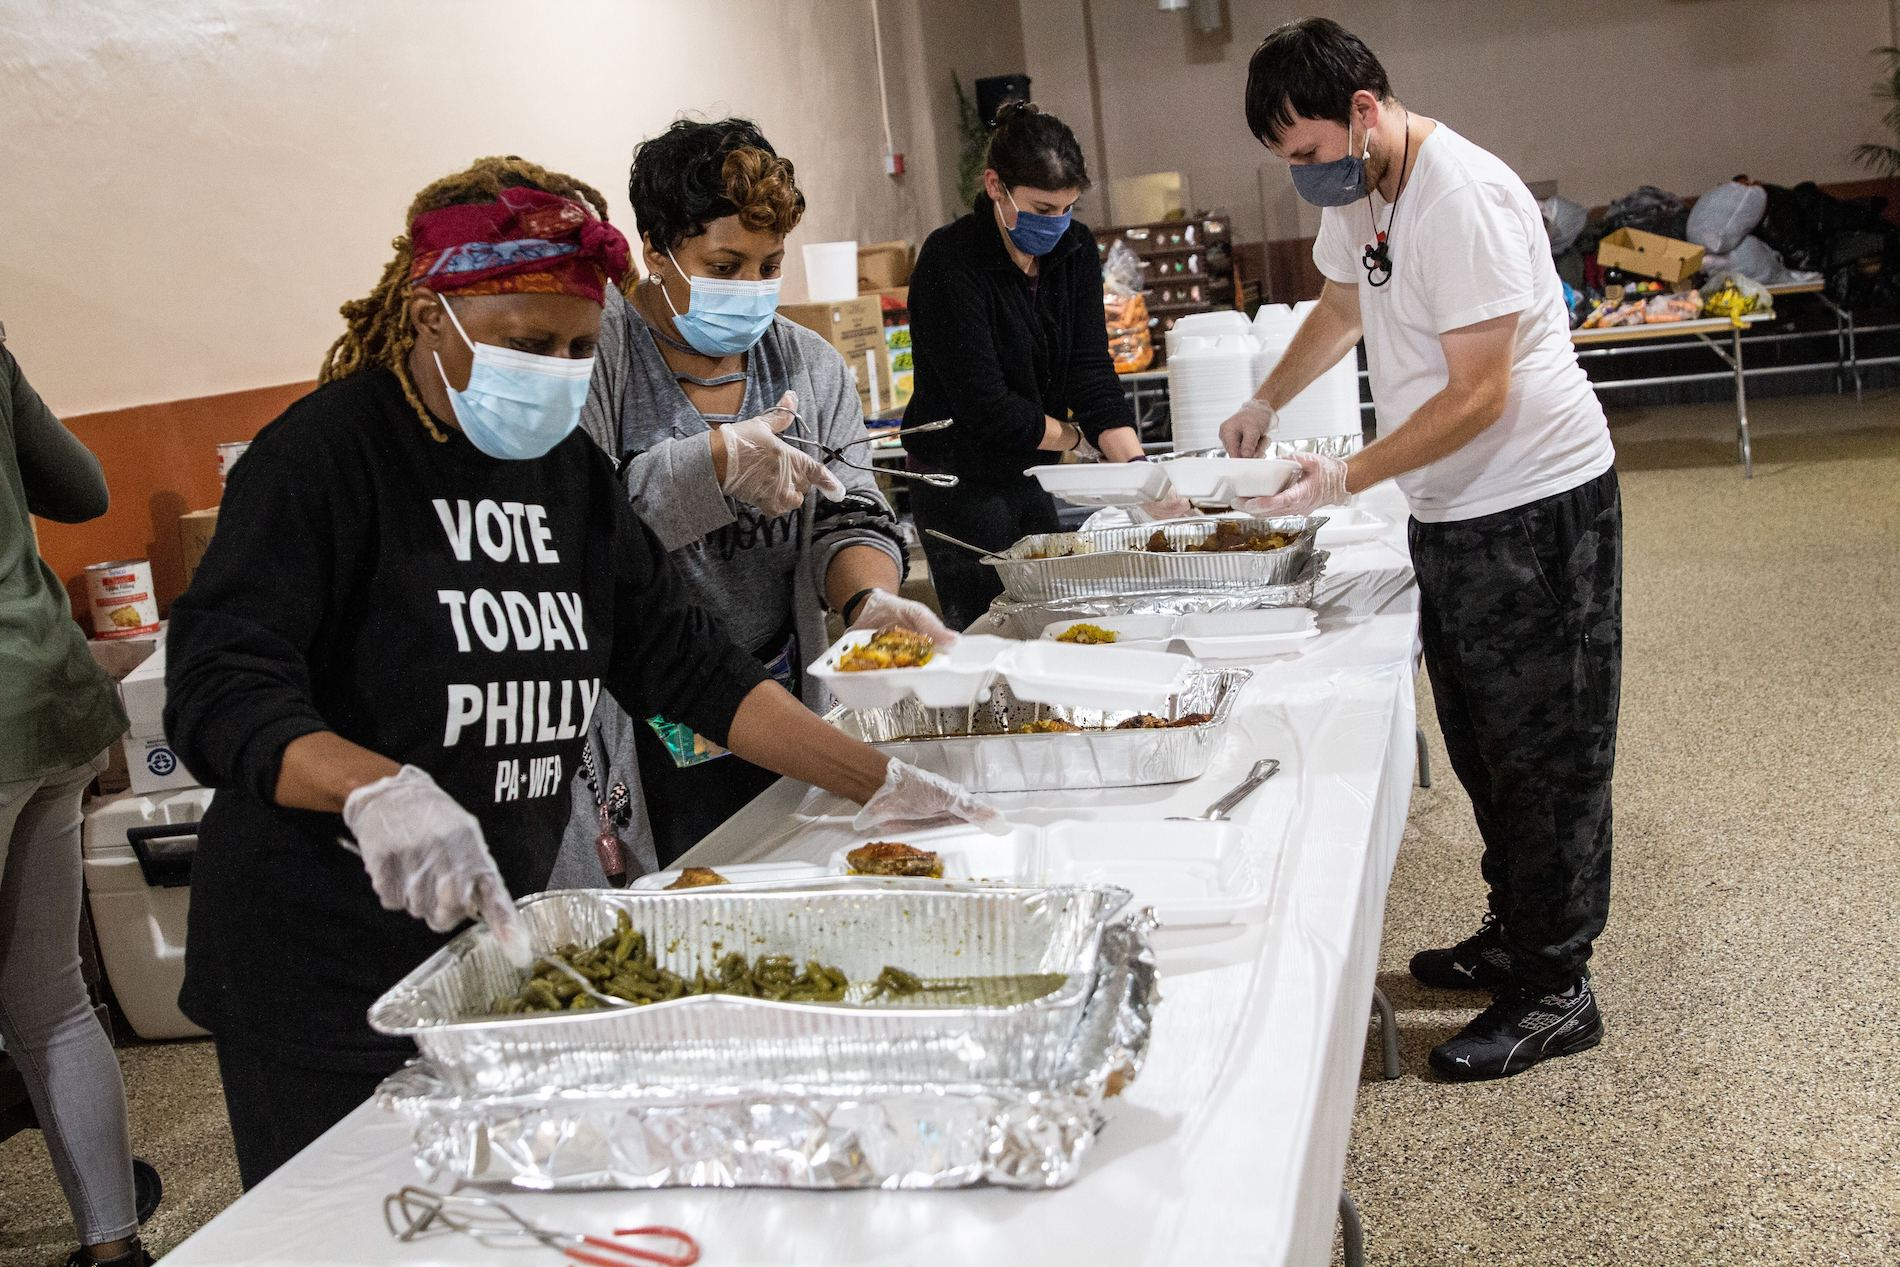 Volunteers at the Chosen 300 Ministries prepare meals for those in need on Spring Garden Street.